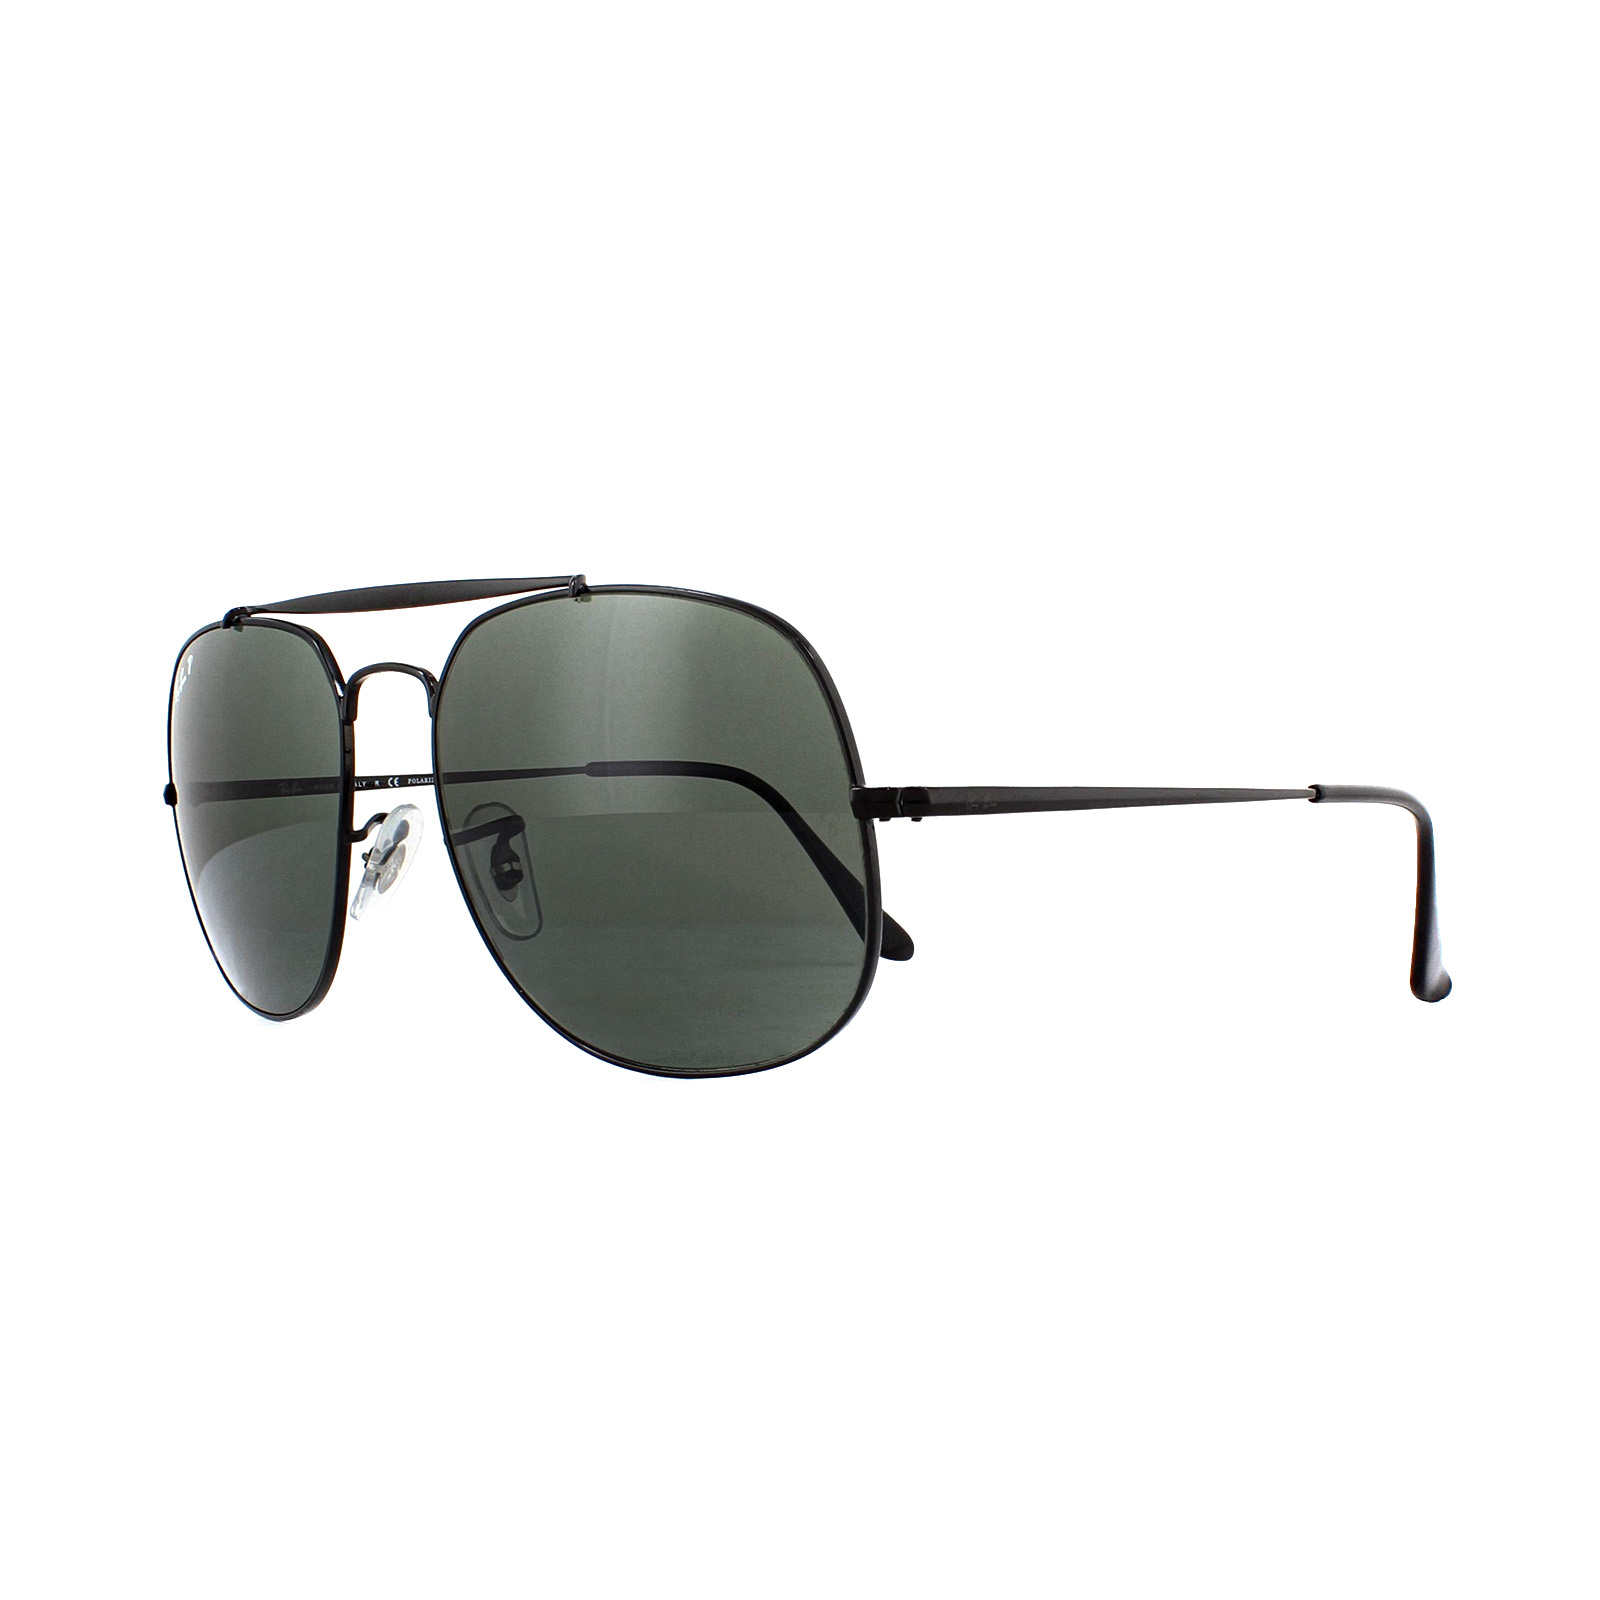 cf76bbd79c Sentinel Ray-Ban Sunglasses General 3561 002 58 Black Green Polarized